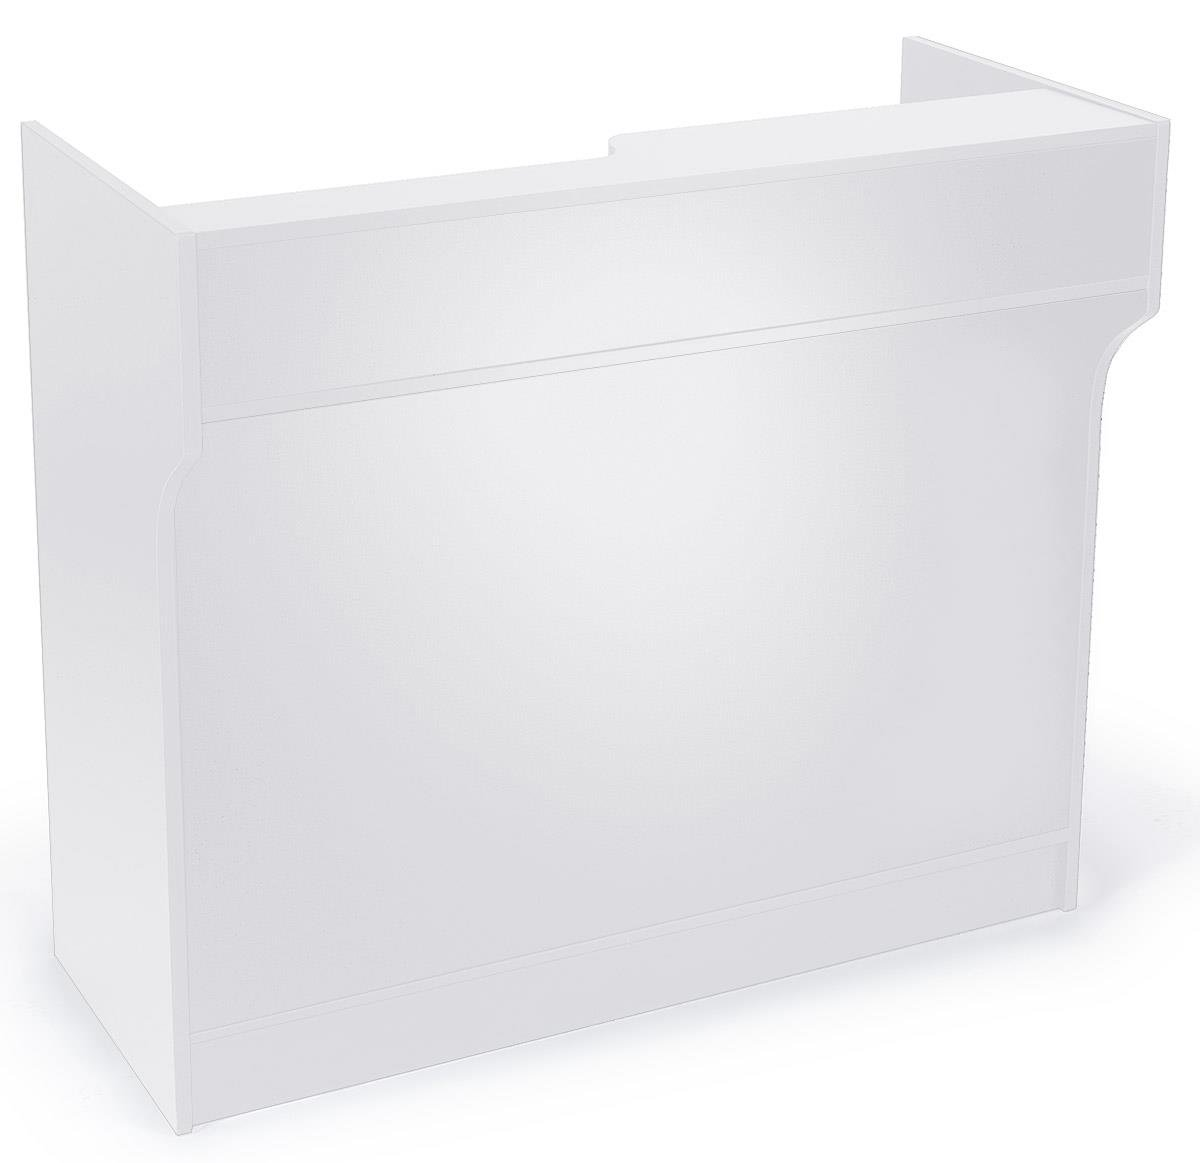 Displays2go 48 Inch Cash Wrap with Storage, Laminated Particle Board, Shelves, Drawer - White Finish (MRCLT48WH) by Displays2go